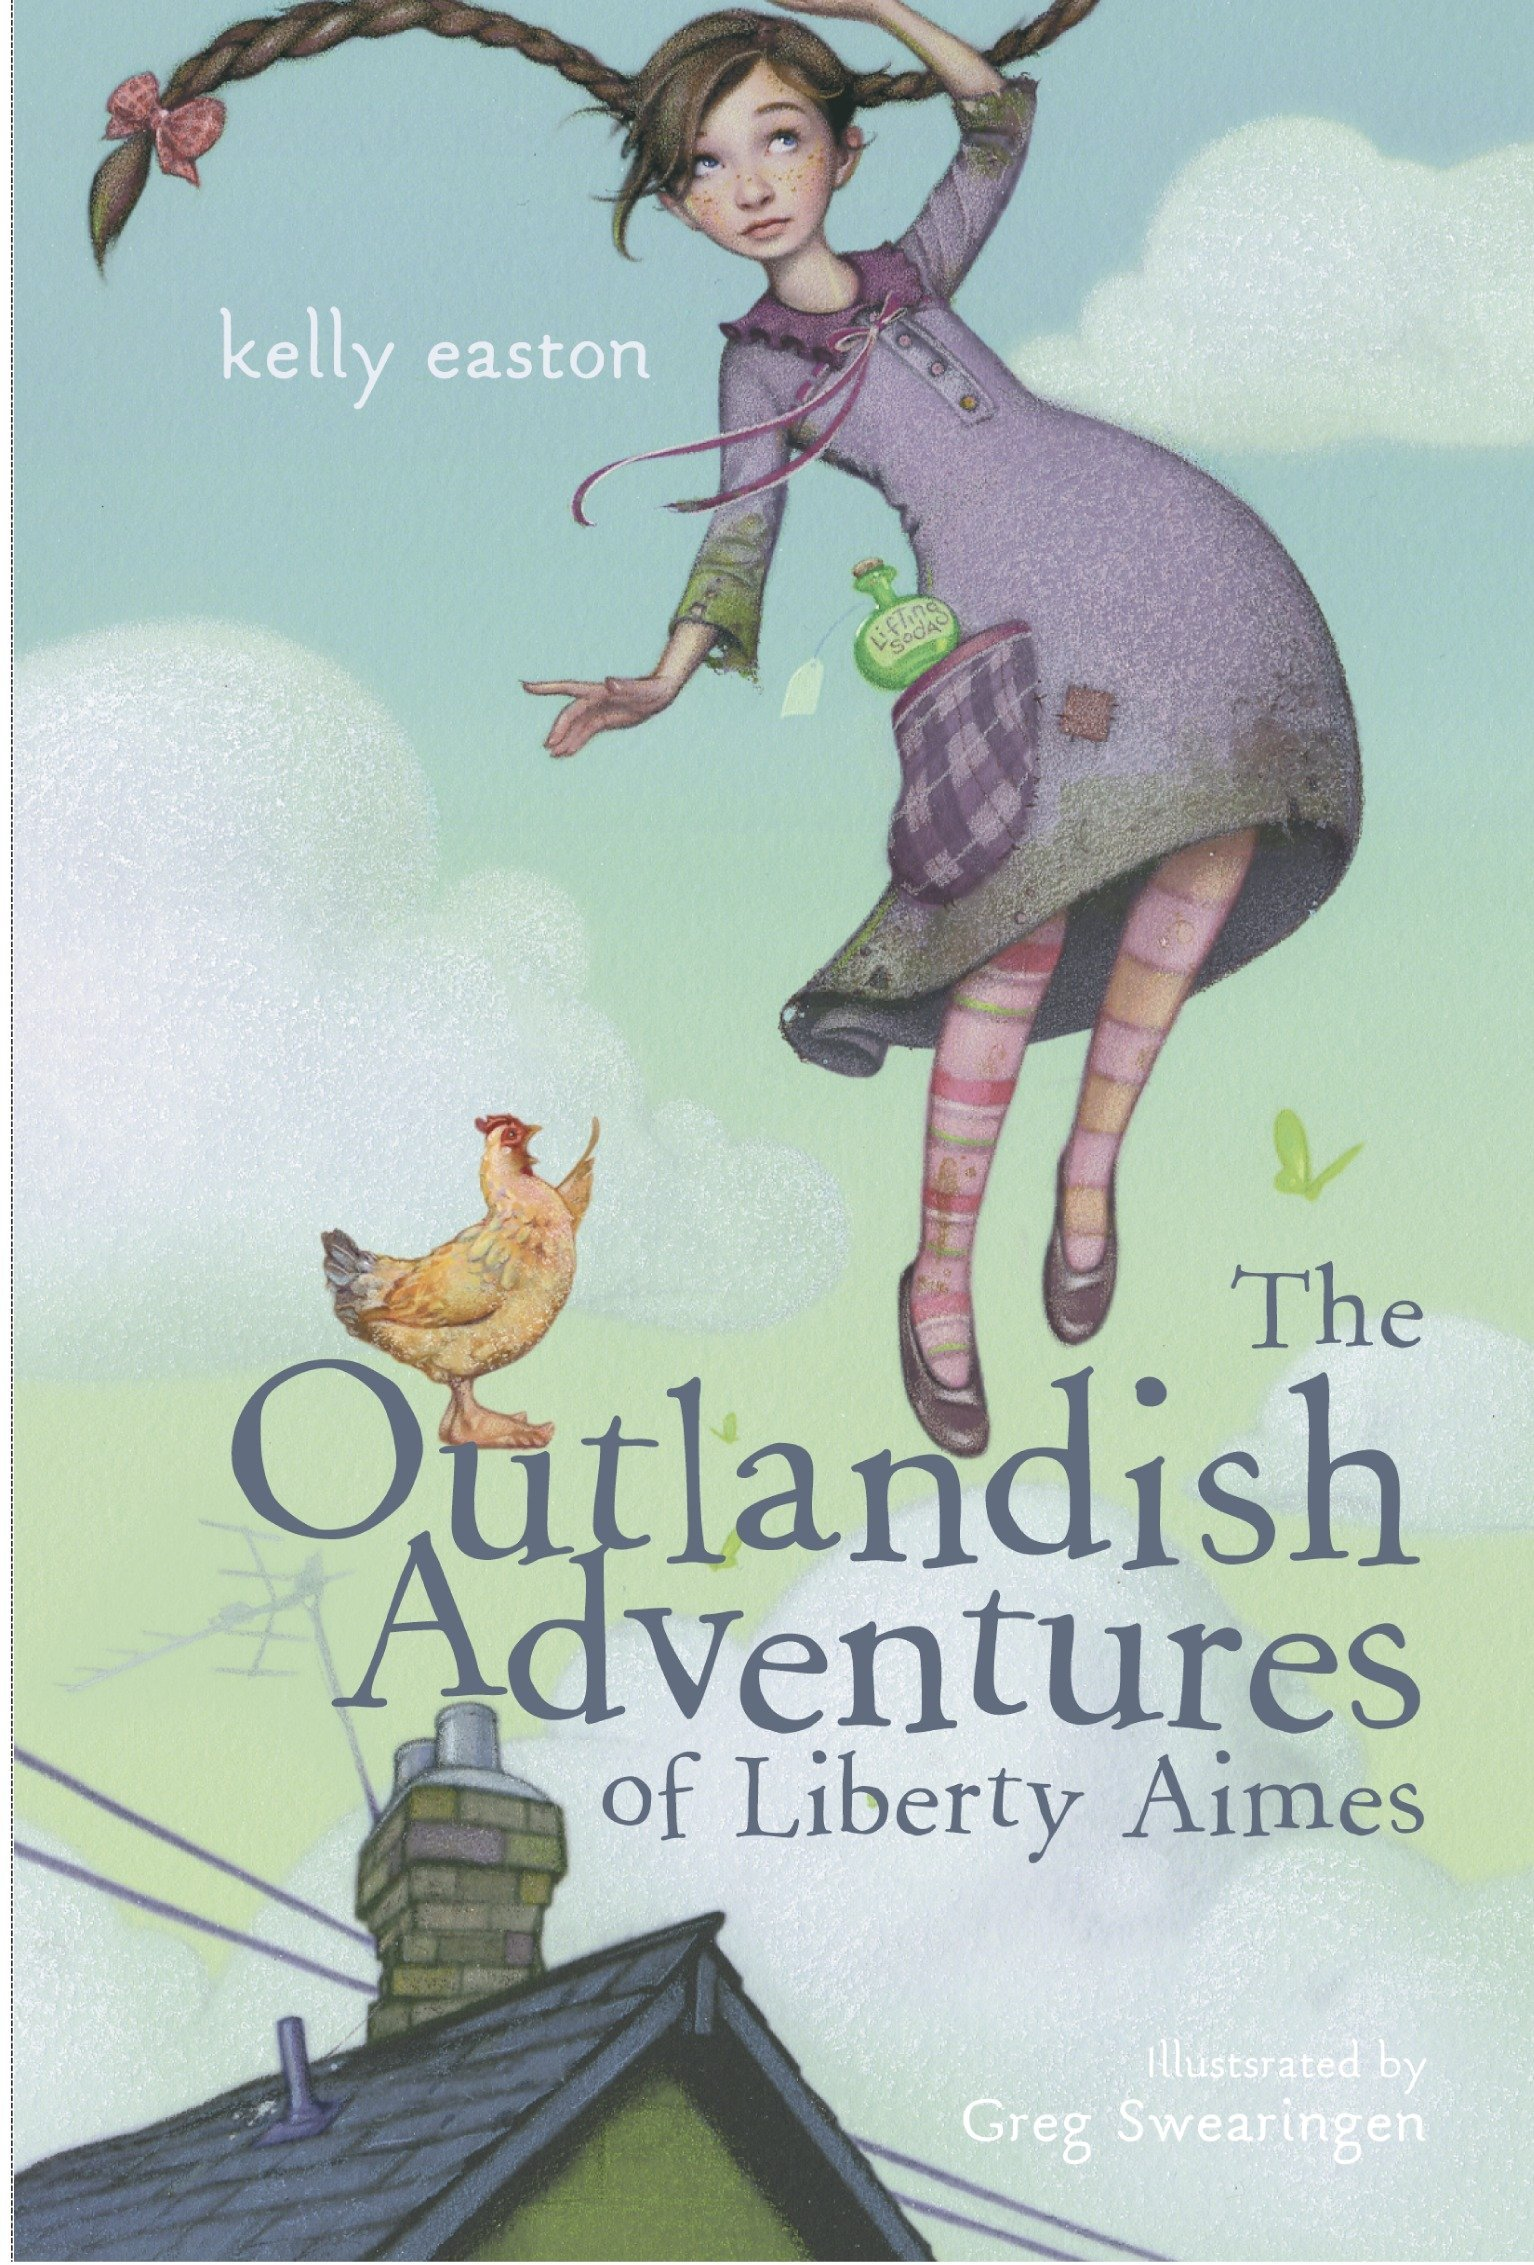 The Outlandish Adventures of Liberty Aimes PDF